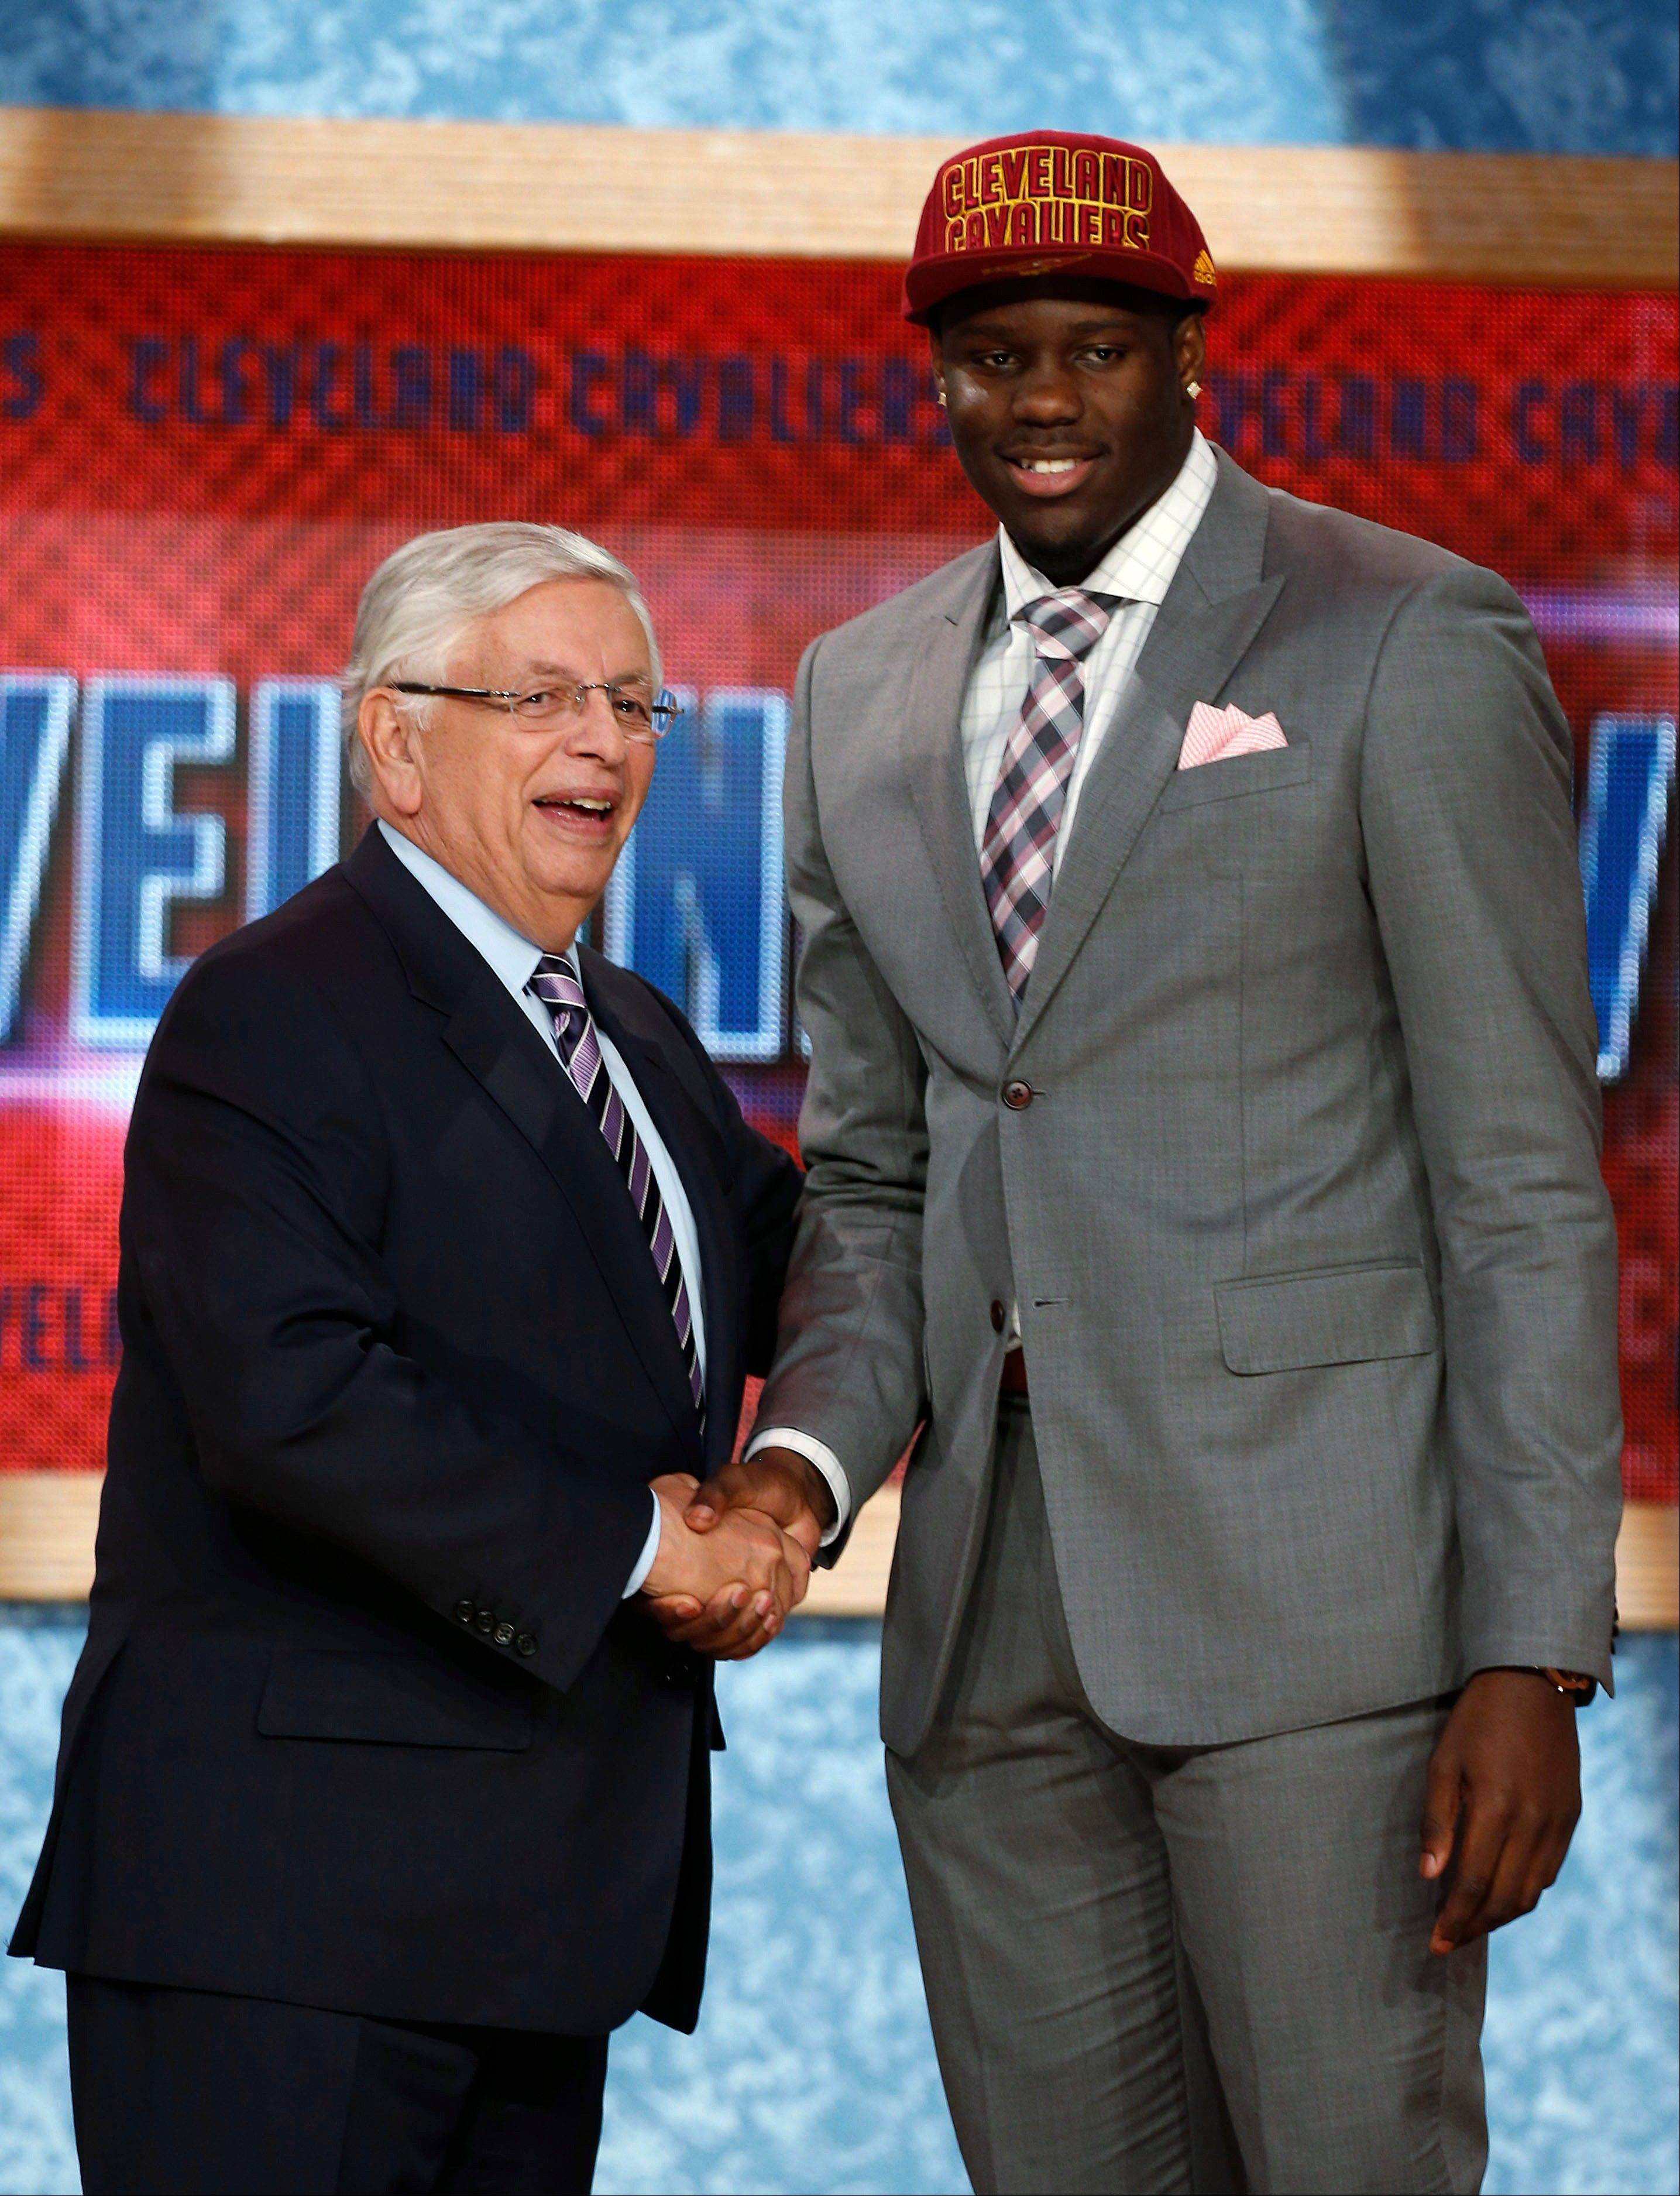 NBA Commissioner David Stern shakes hands with UNLV's Anthony Bennett, who was selected first overall by the Cleveland Cavaliers in the NBA draft Thursday in New York.